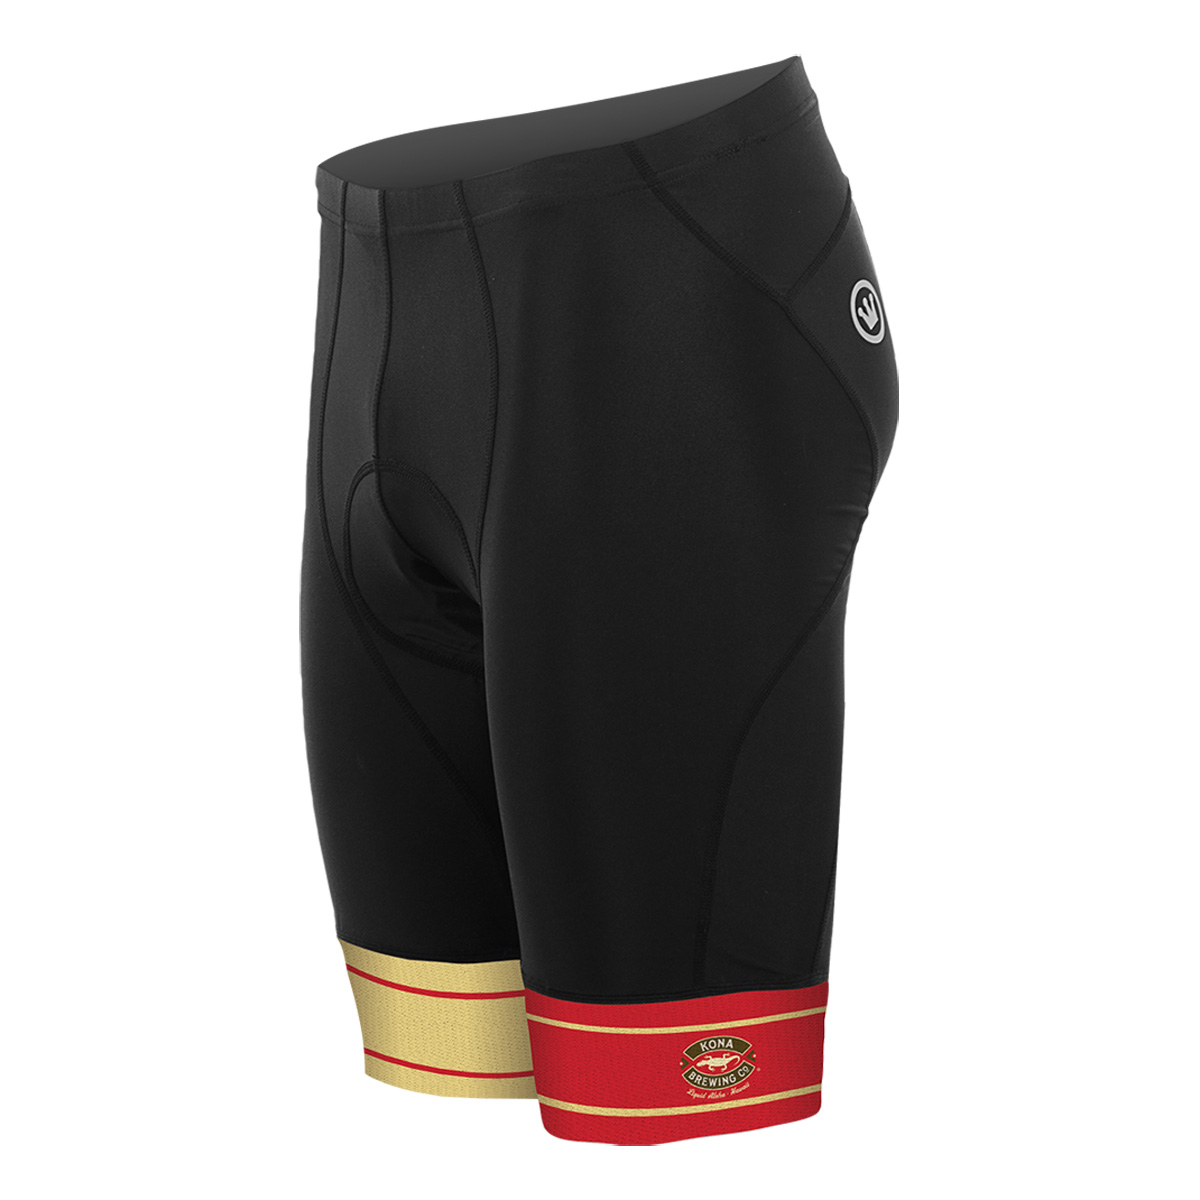 Canari Cyclewear Women's KBC Longboard Mulan Cycling Short 2098-KLB by Canari Cyclewear